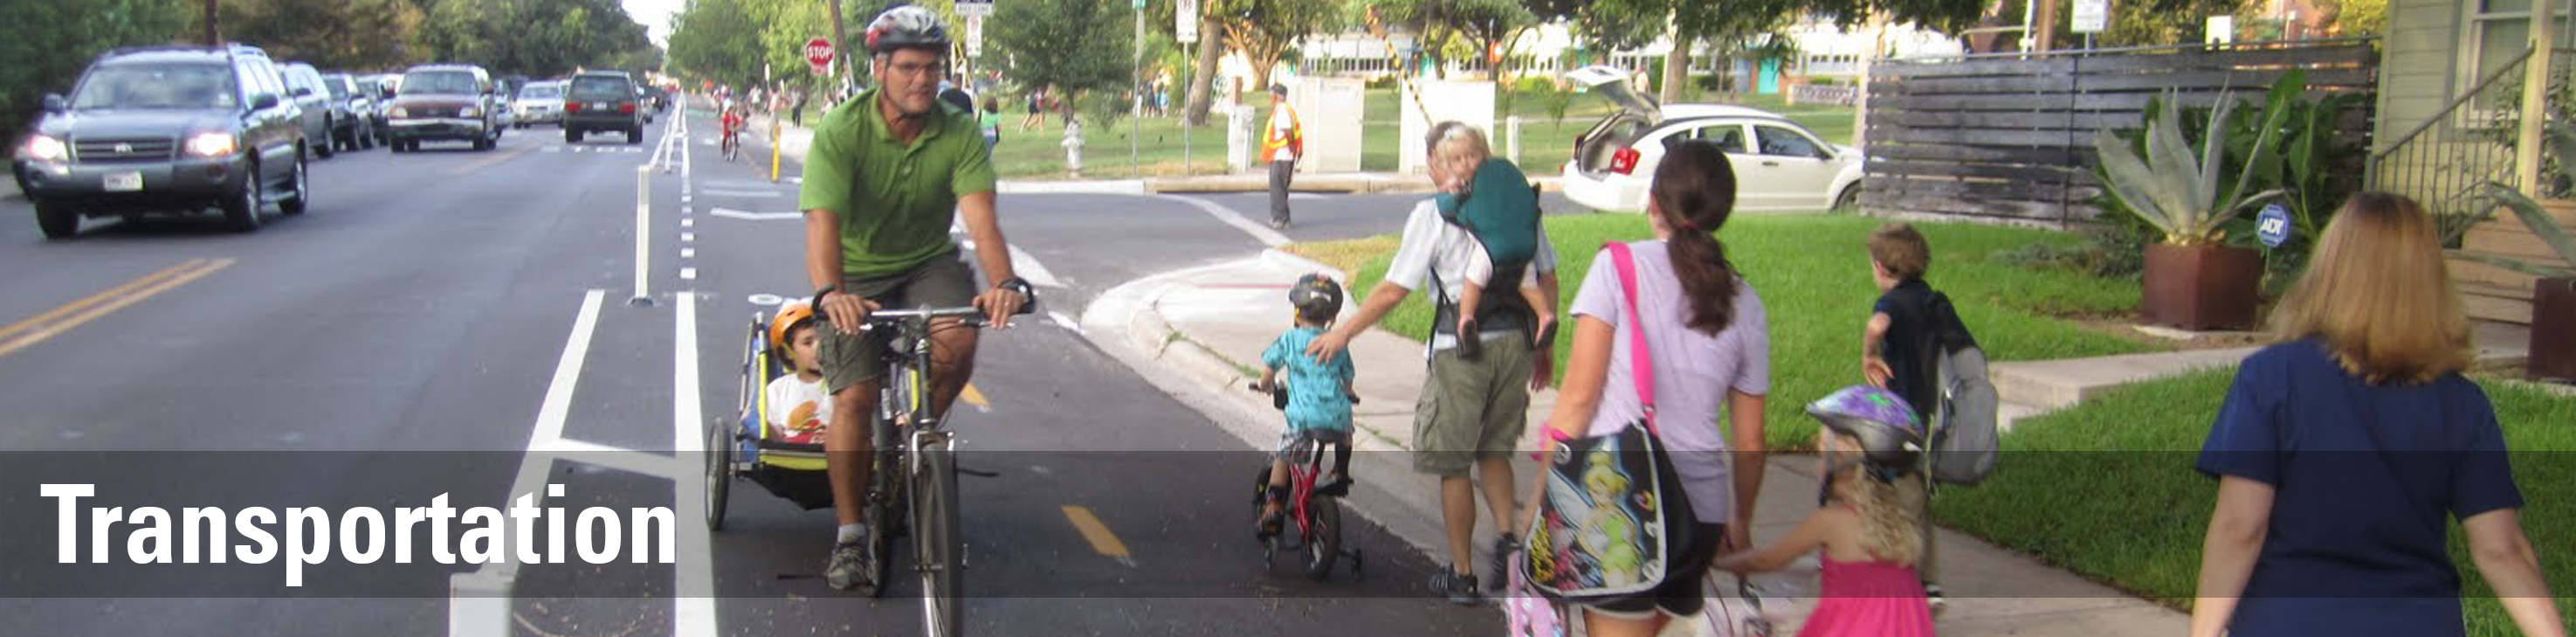 Bicycle | Transportation | Austintexas.gov - The Official Website Of - Austin Texas Bicycle Map